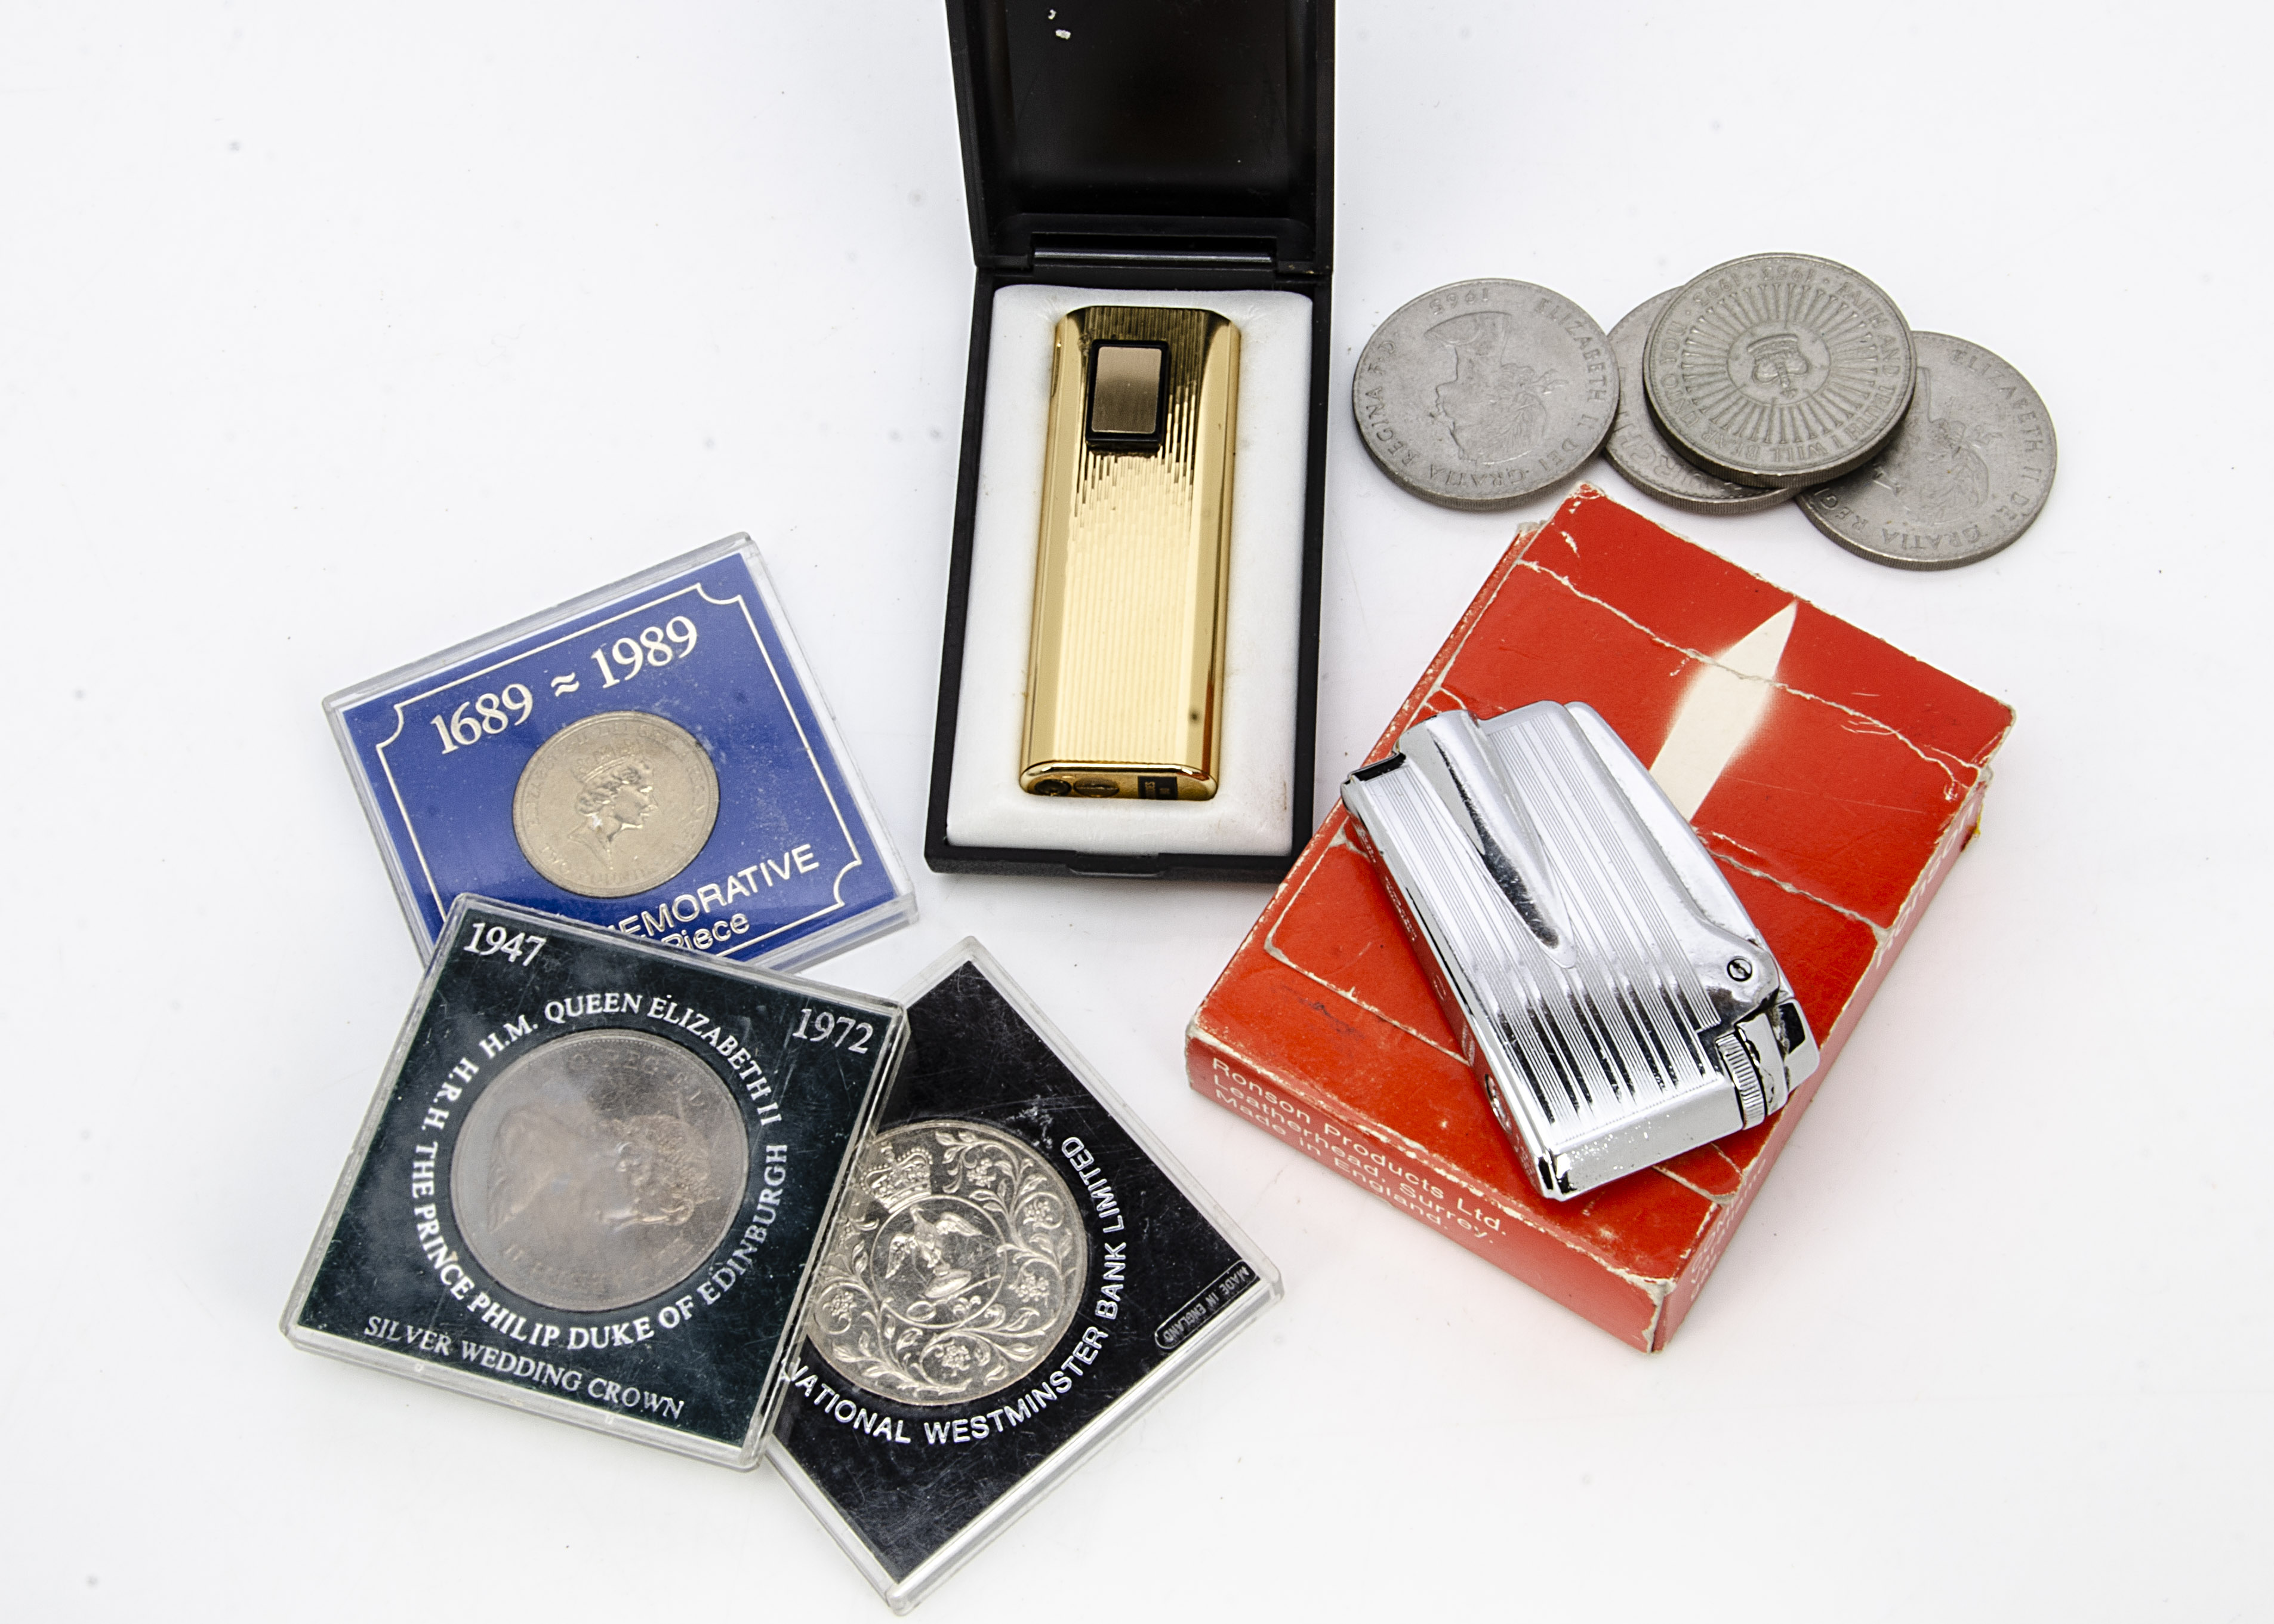 A collection of crowns, together with several £2 coins and two lighters